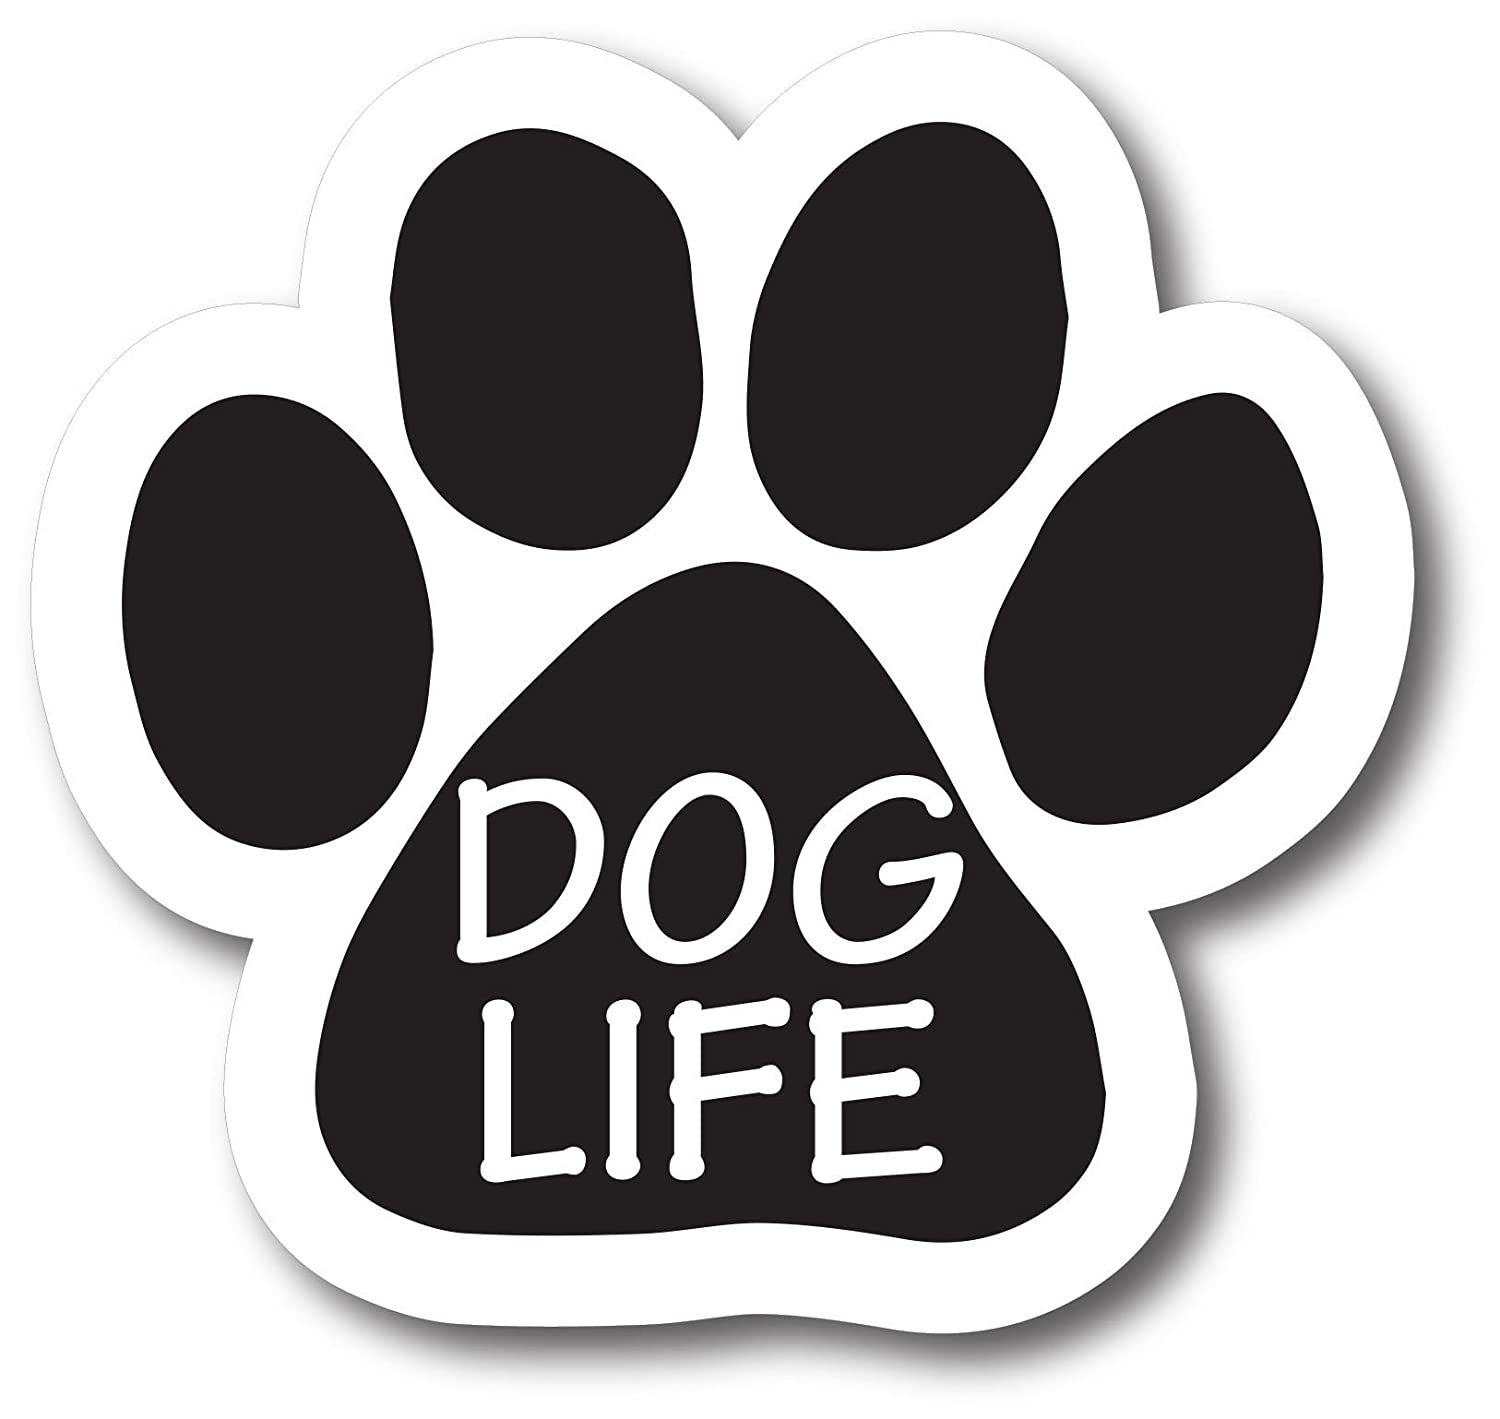 Magnet Me Up Dog Life Pawprint Car Magnet Paw Print Auto Truck Decal Magnet P-50